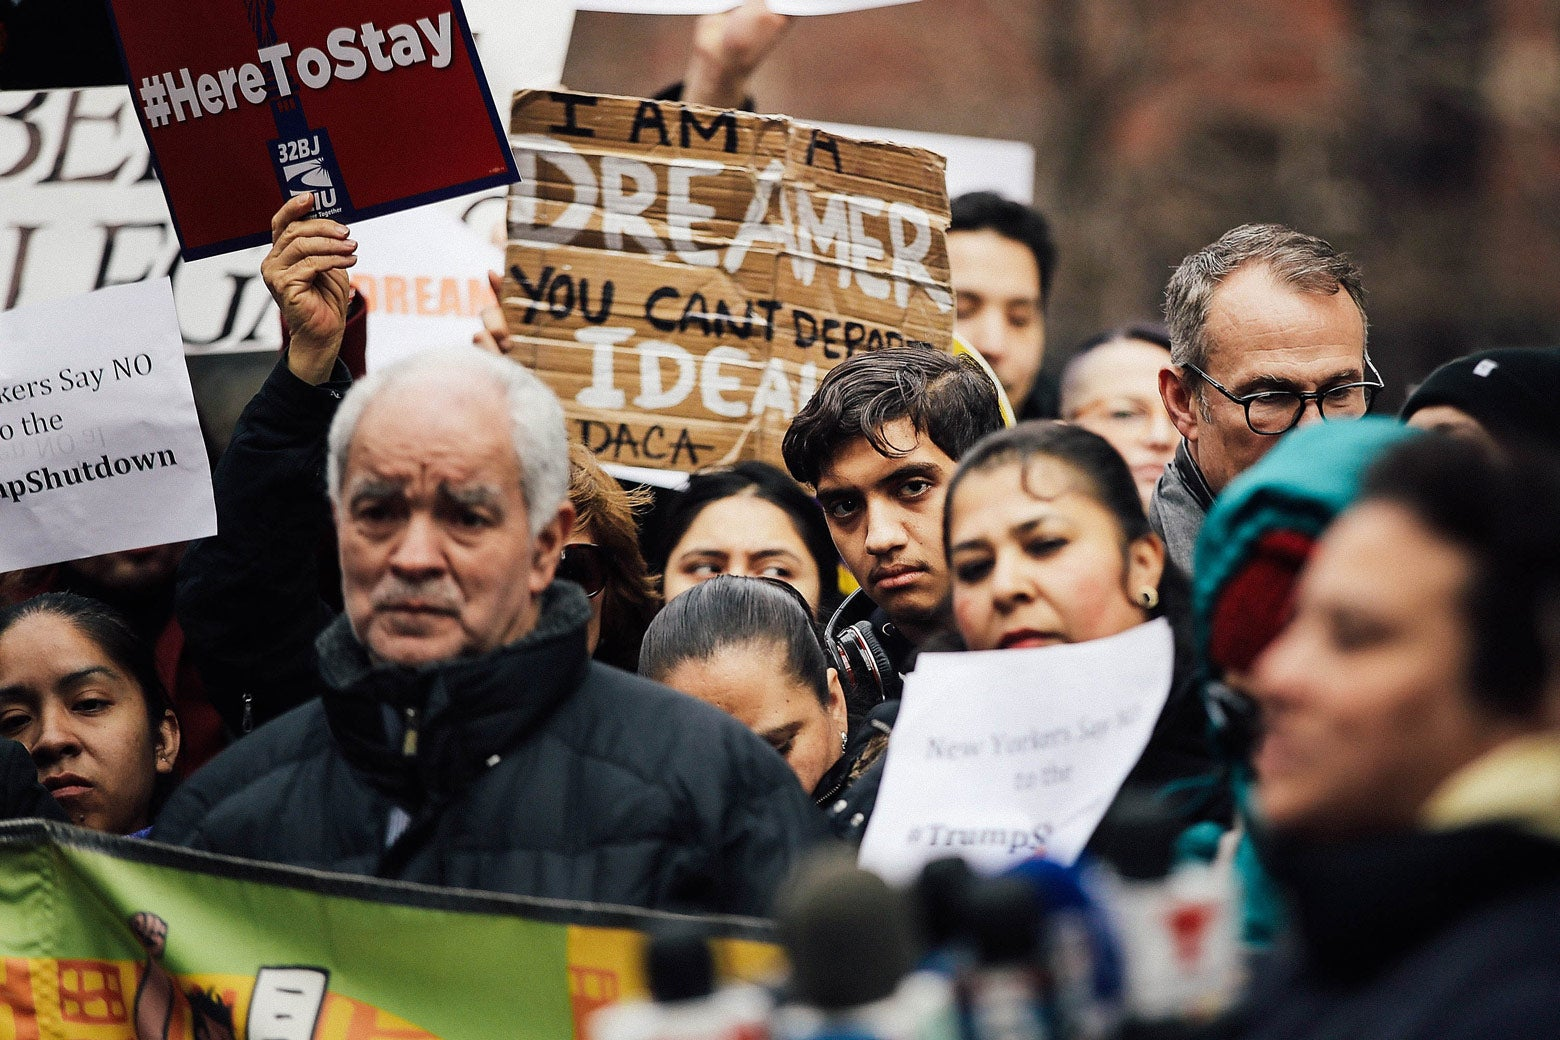 Demonstrators, many of them recent immigrants to America, protest the government shutdown and the lack of a deal on DACA outside of Federal Plaza on Jan. 22 in New York.